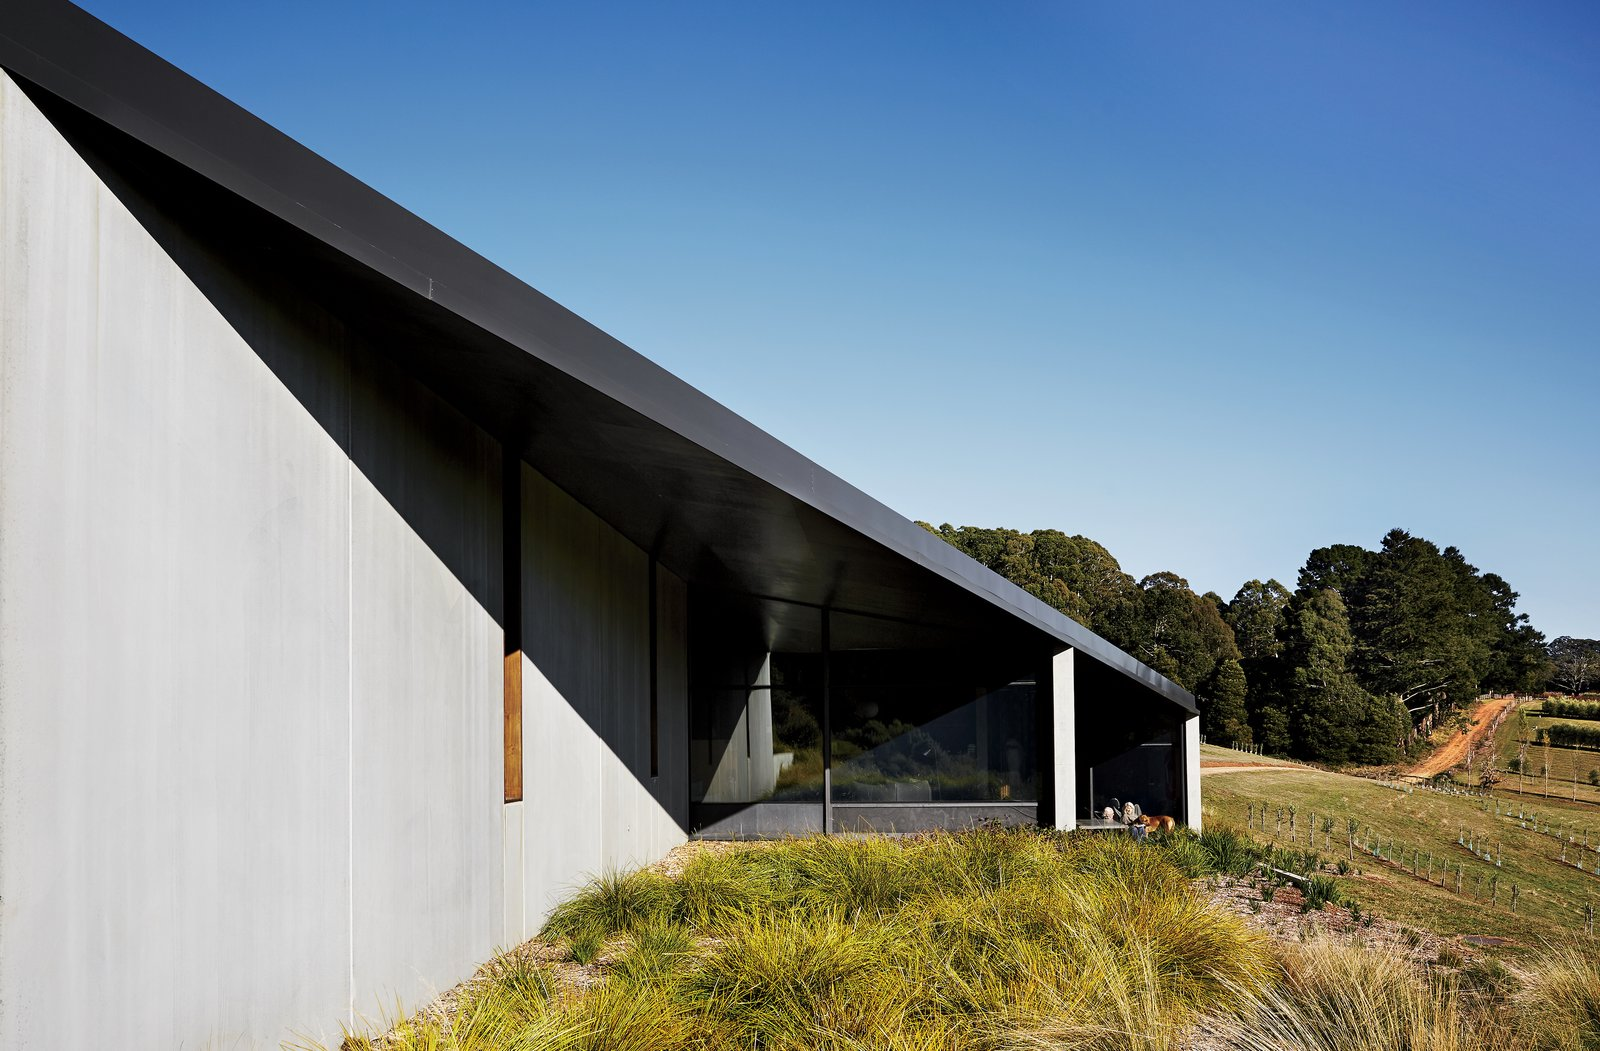 Exterior, Concrete Siding Material, and House Building Type Embedded in the rugged southern Australian landscape, the House at Hanging Rock comprises three volumes connected by a sweeping rhomboid roof. The Colorbond steel overhang is in a dark-gray shade called Monument.  Photo 1 of 10 in A Richly Furnished Home Frames Striking Landscape Views